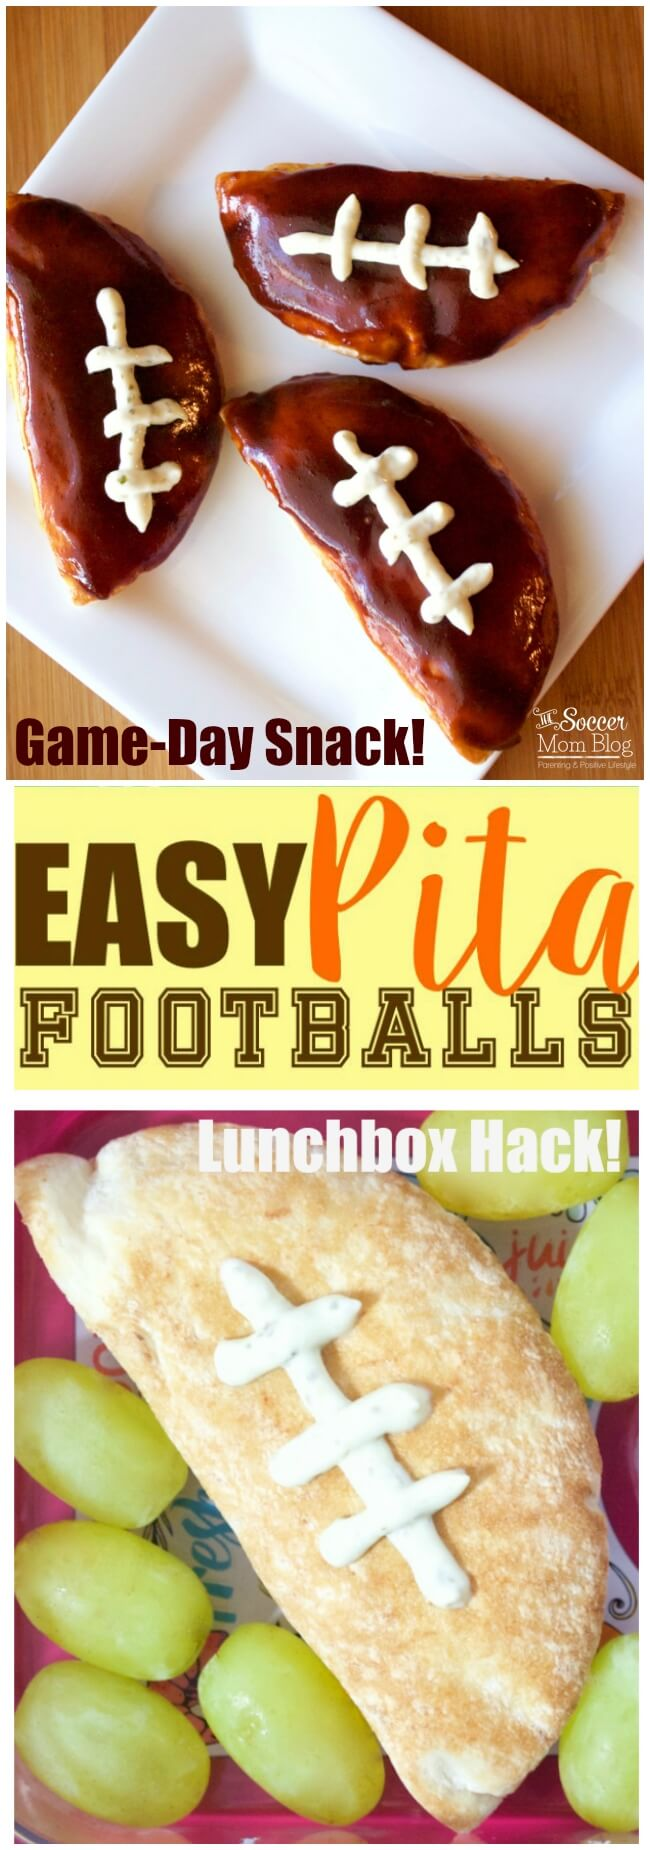 This is the EASIEST football appetizer you'll ever make! Perfect for game day and tailgate parties and the kids lunchbox too!